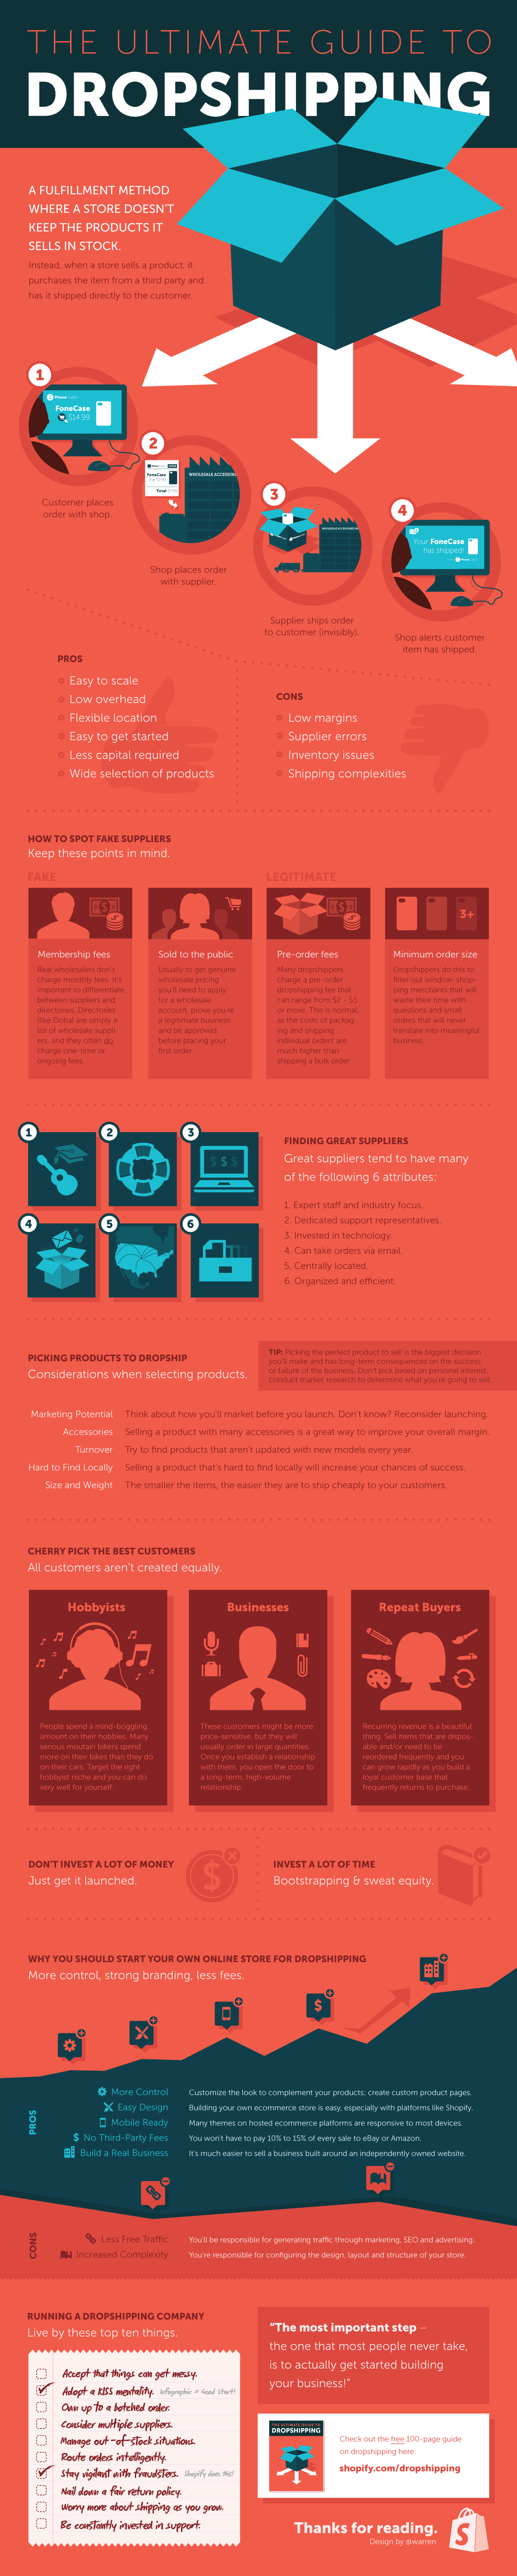 Shopify_Dropshipping_Infographic_What_is_Drop_Shipping